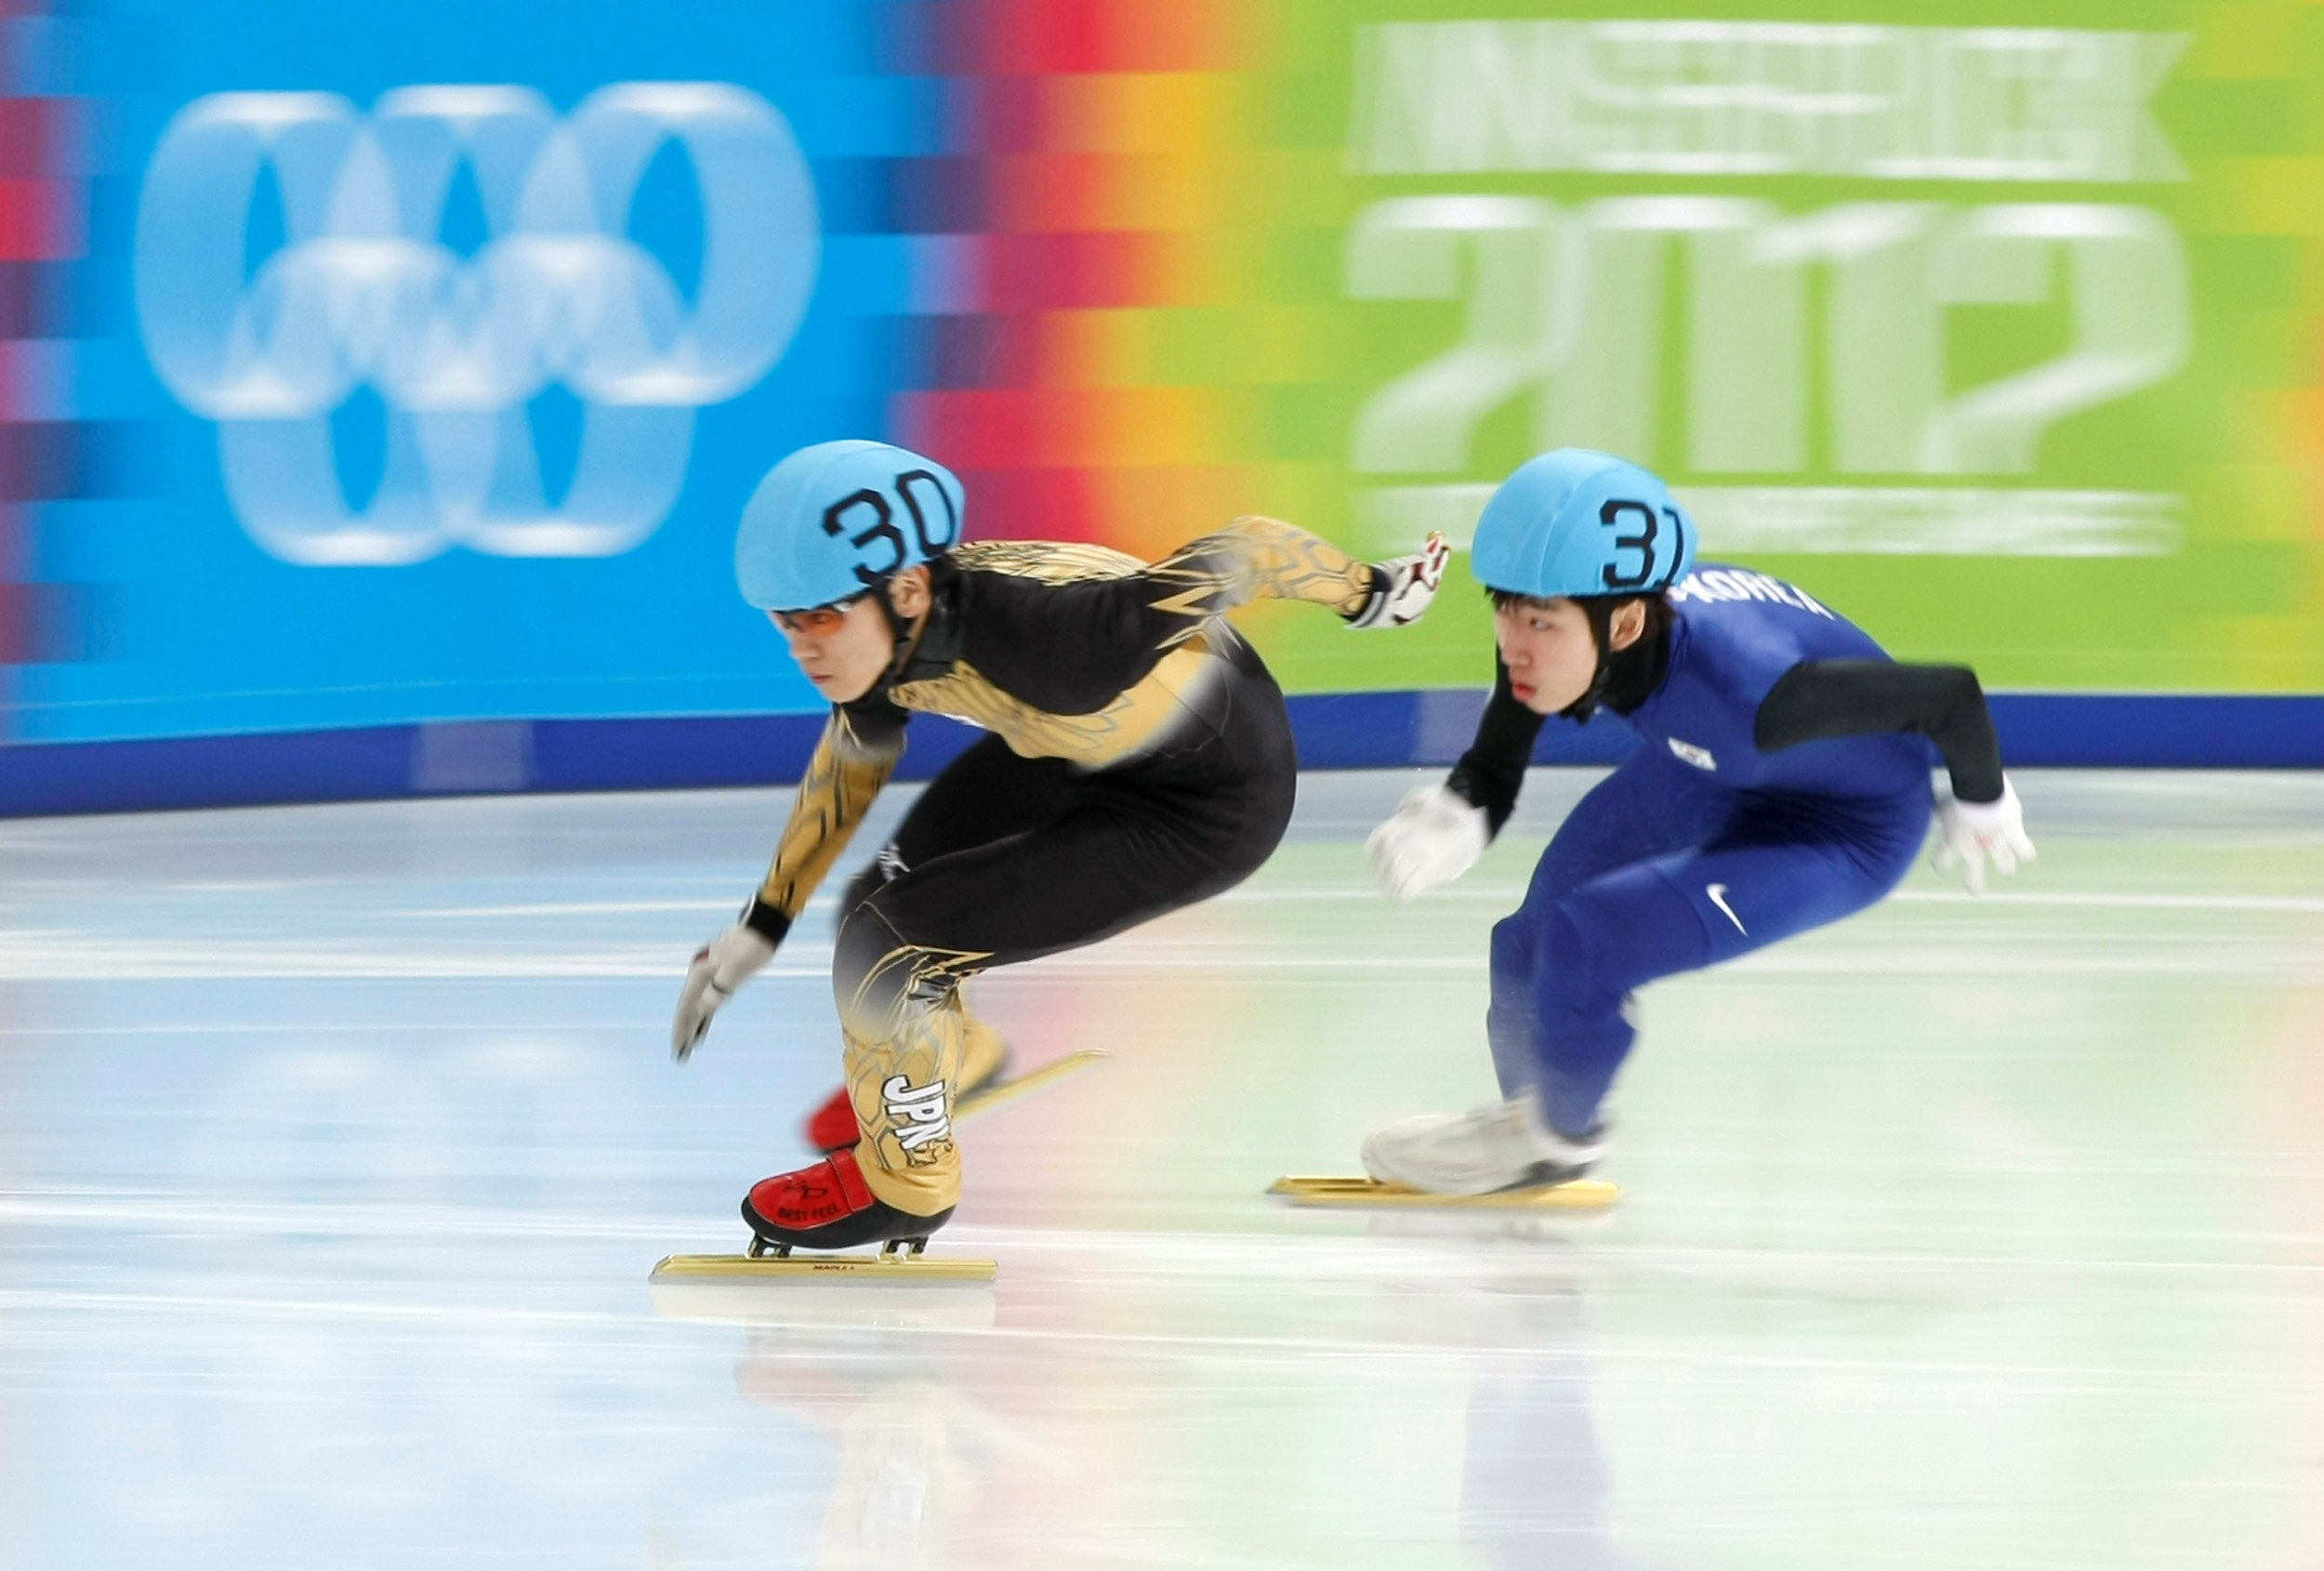 Japanese speedskater banned from Olympics for alleged doping